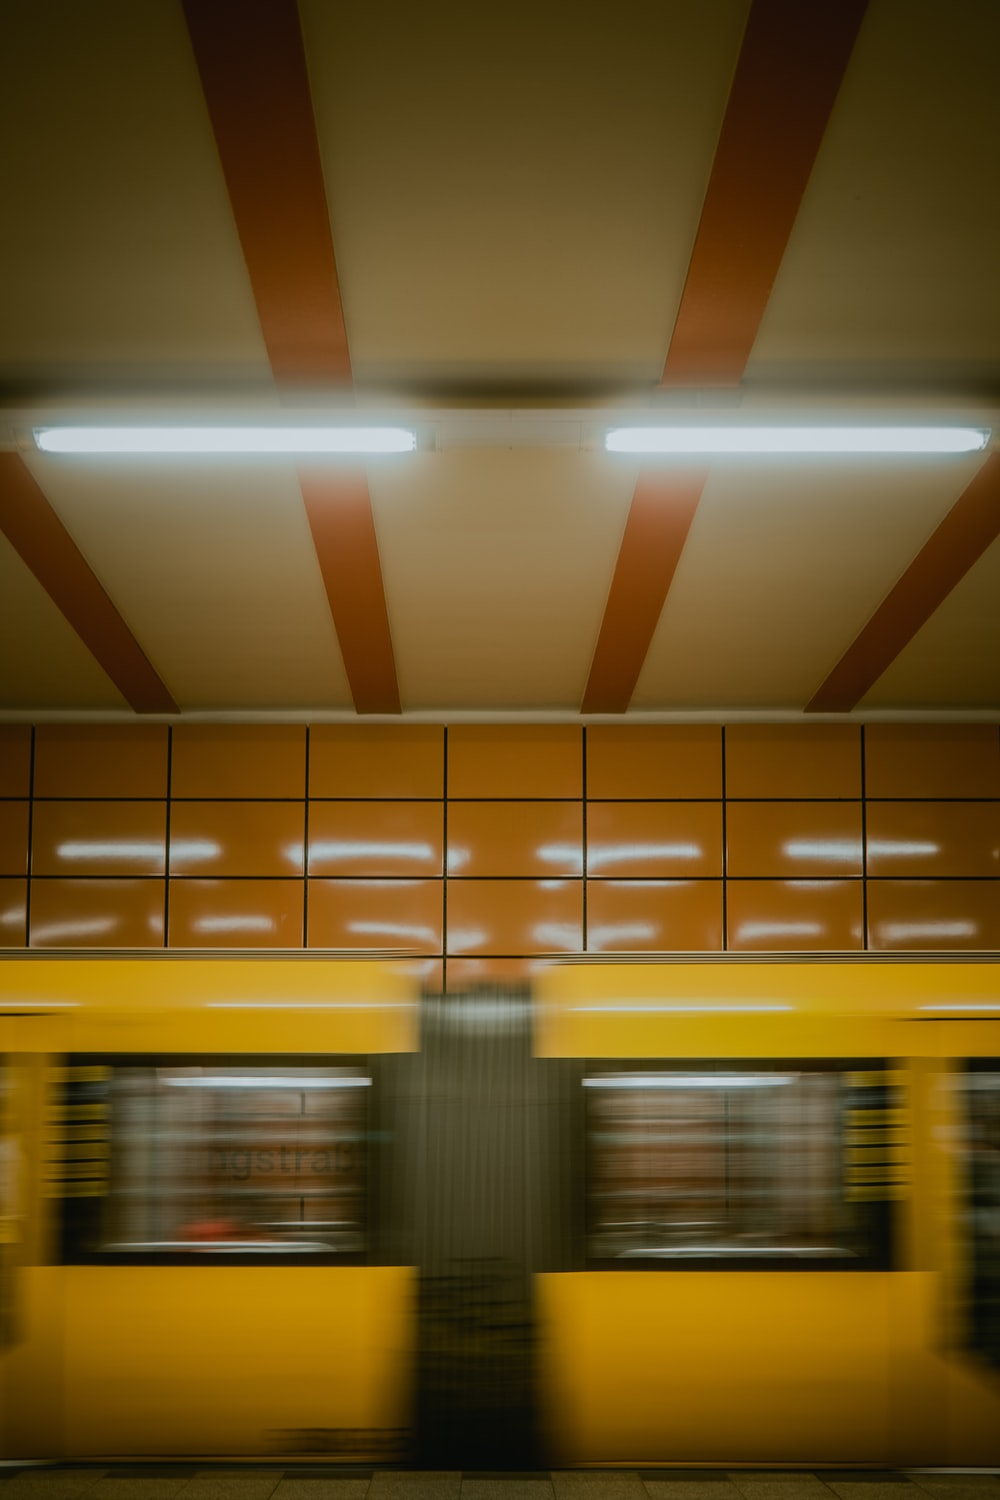 yellow and white train station